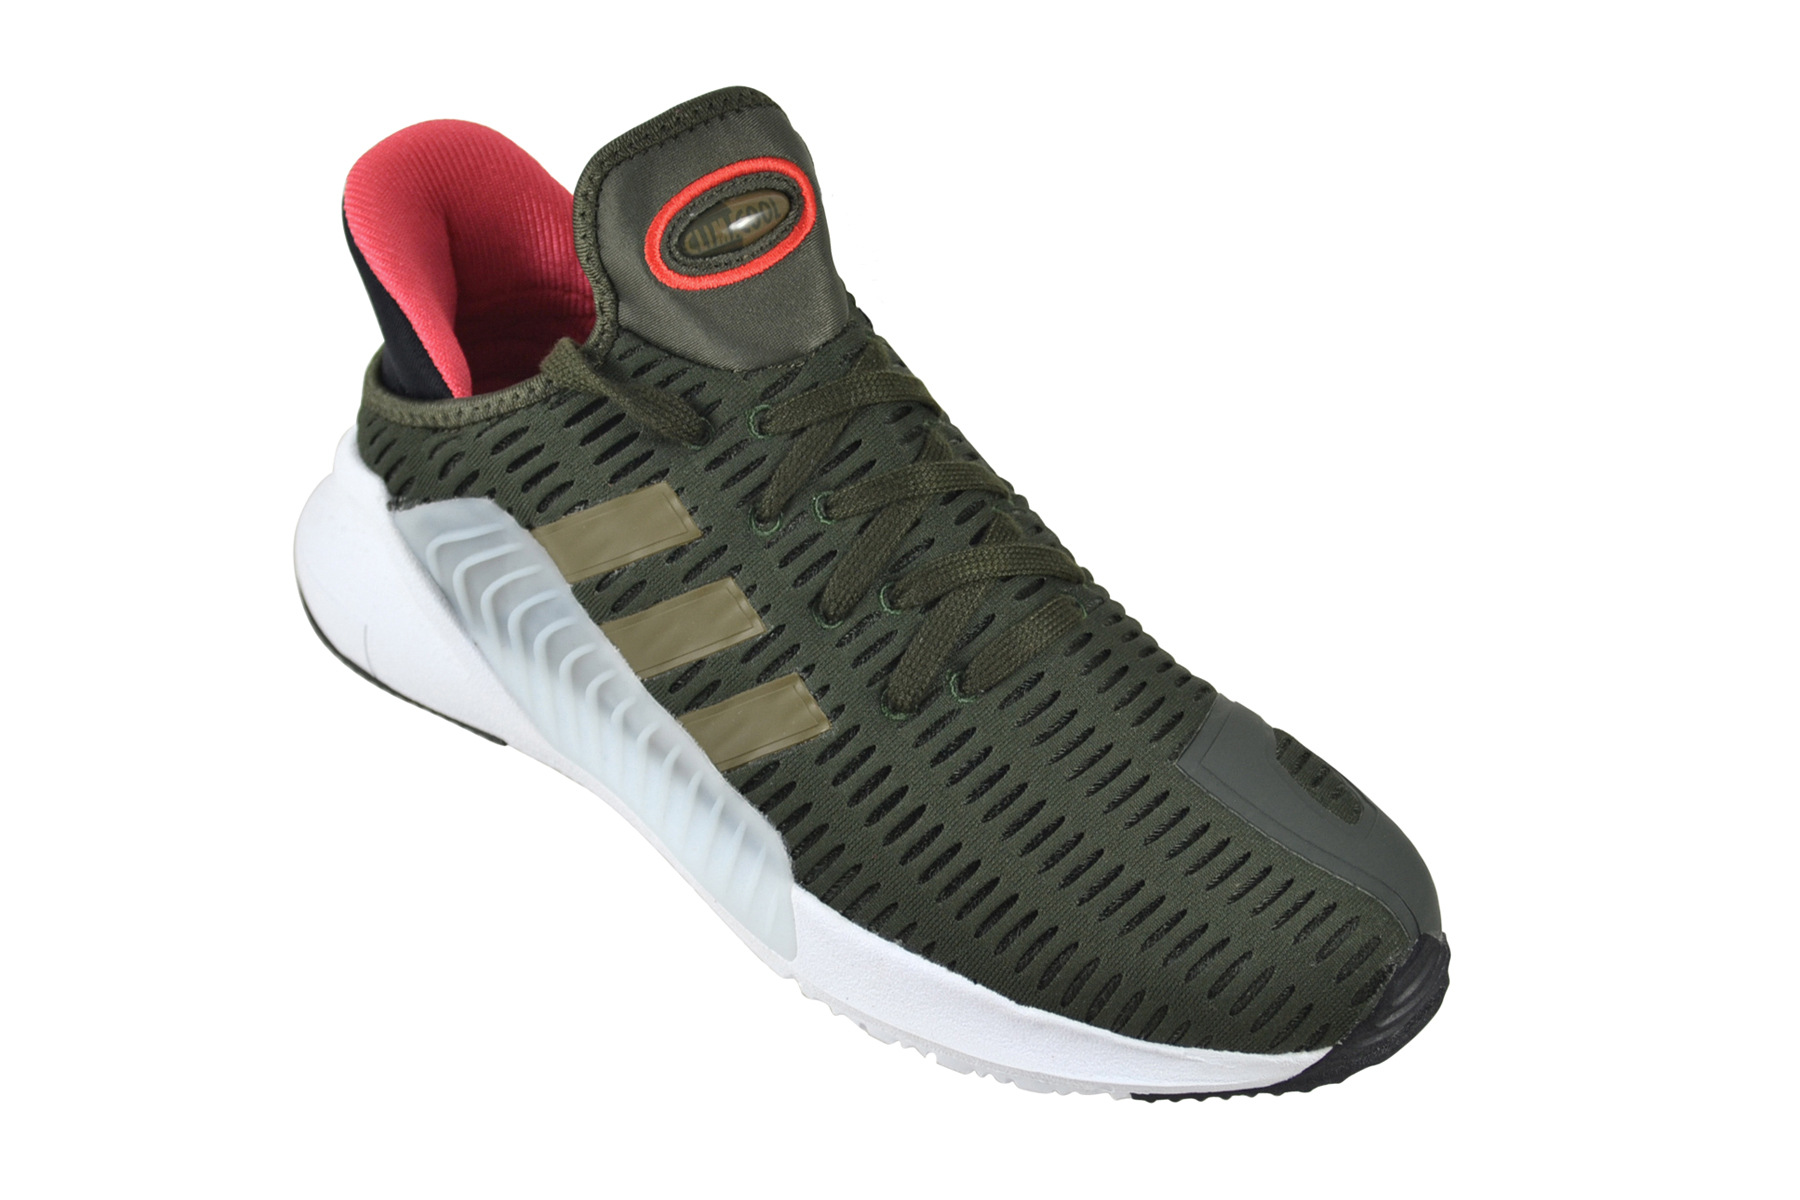 Details about Adidas Climacool 02 17 Night Cargo Olive White 0217 Shoes Sneaker Green CG3345